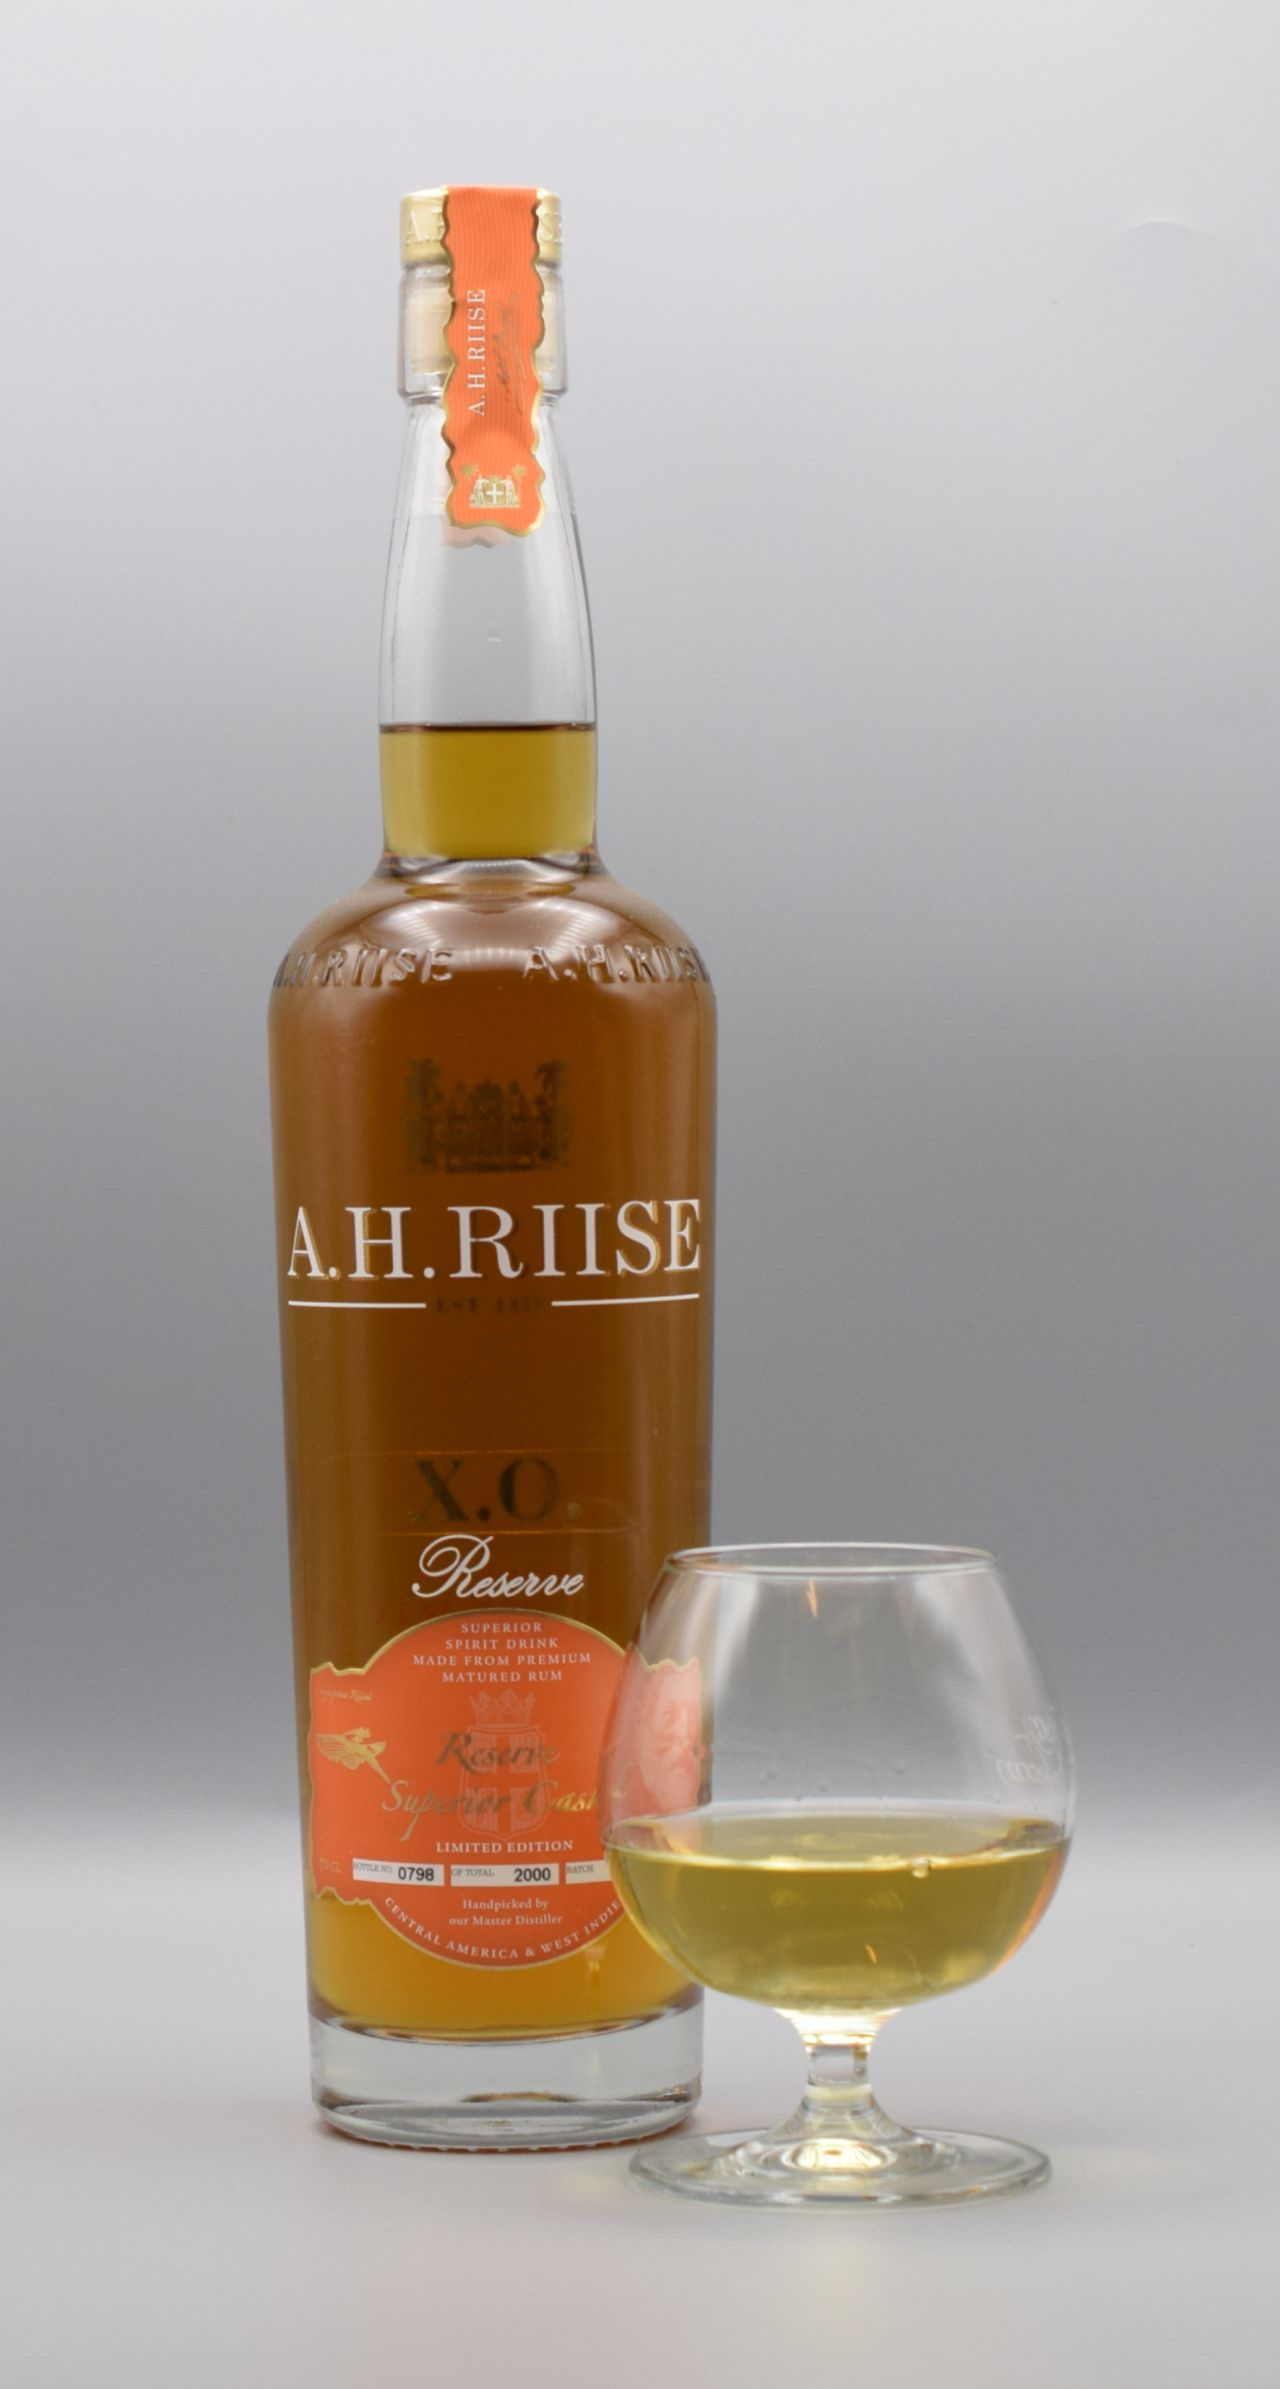 Riise XO Reserve Superior Cask